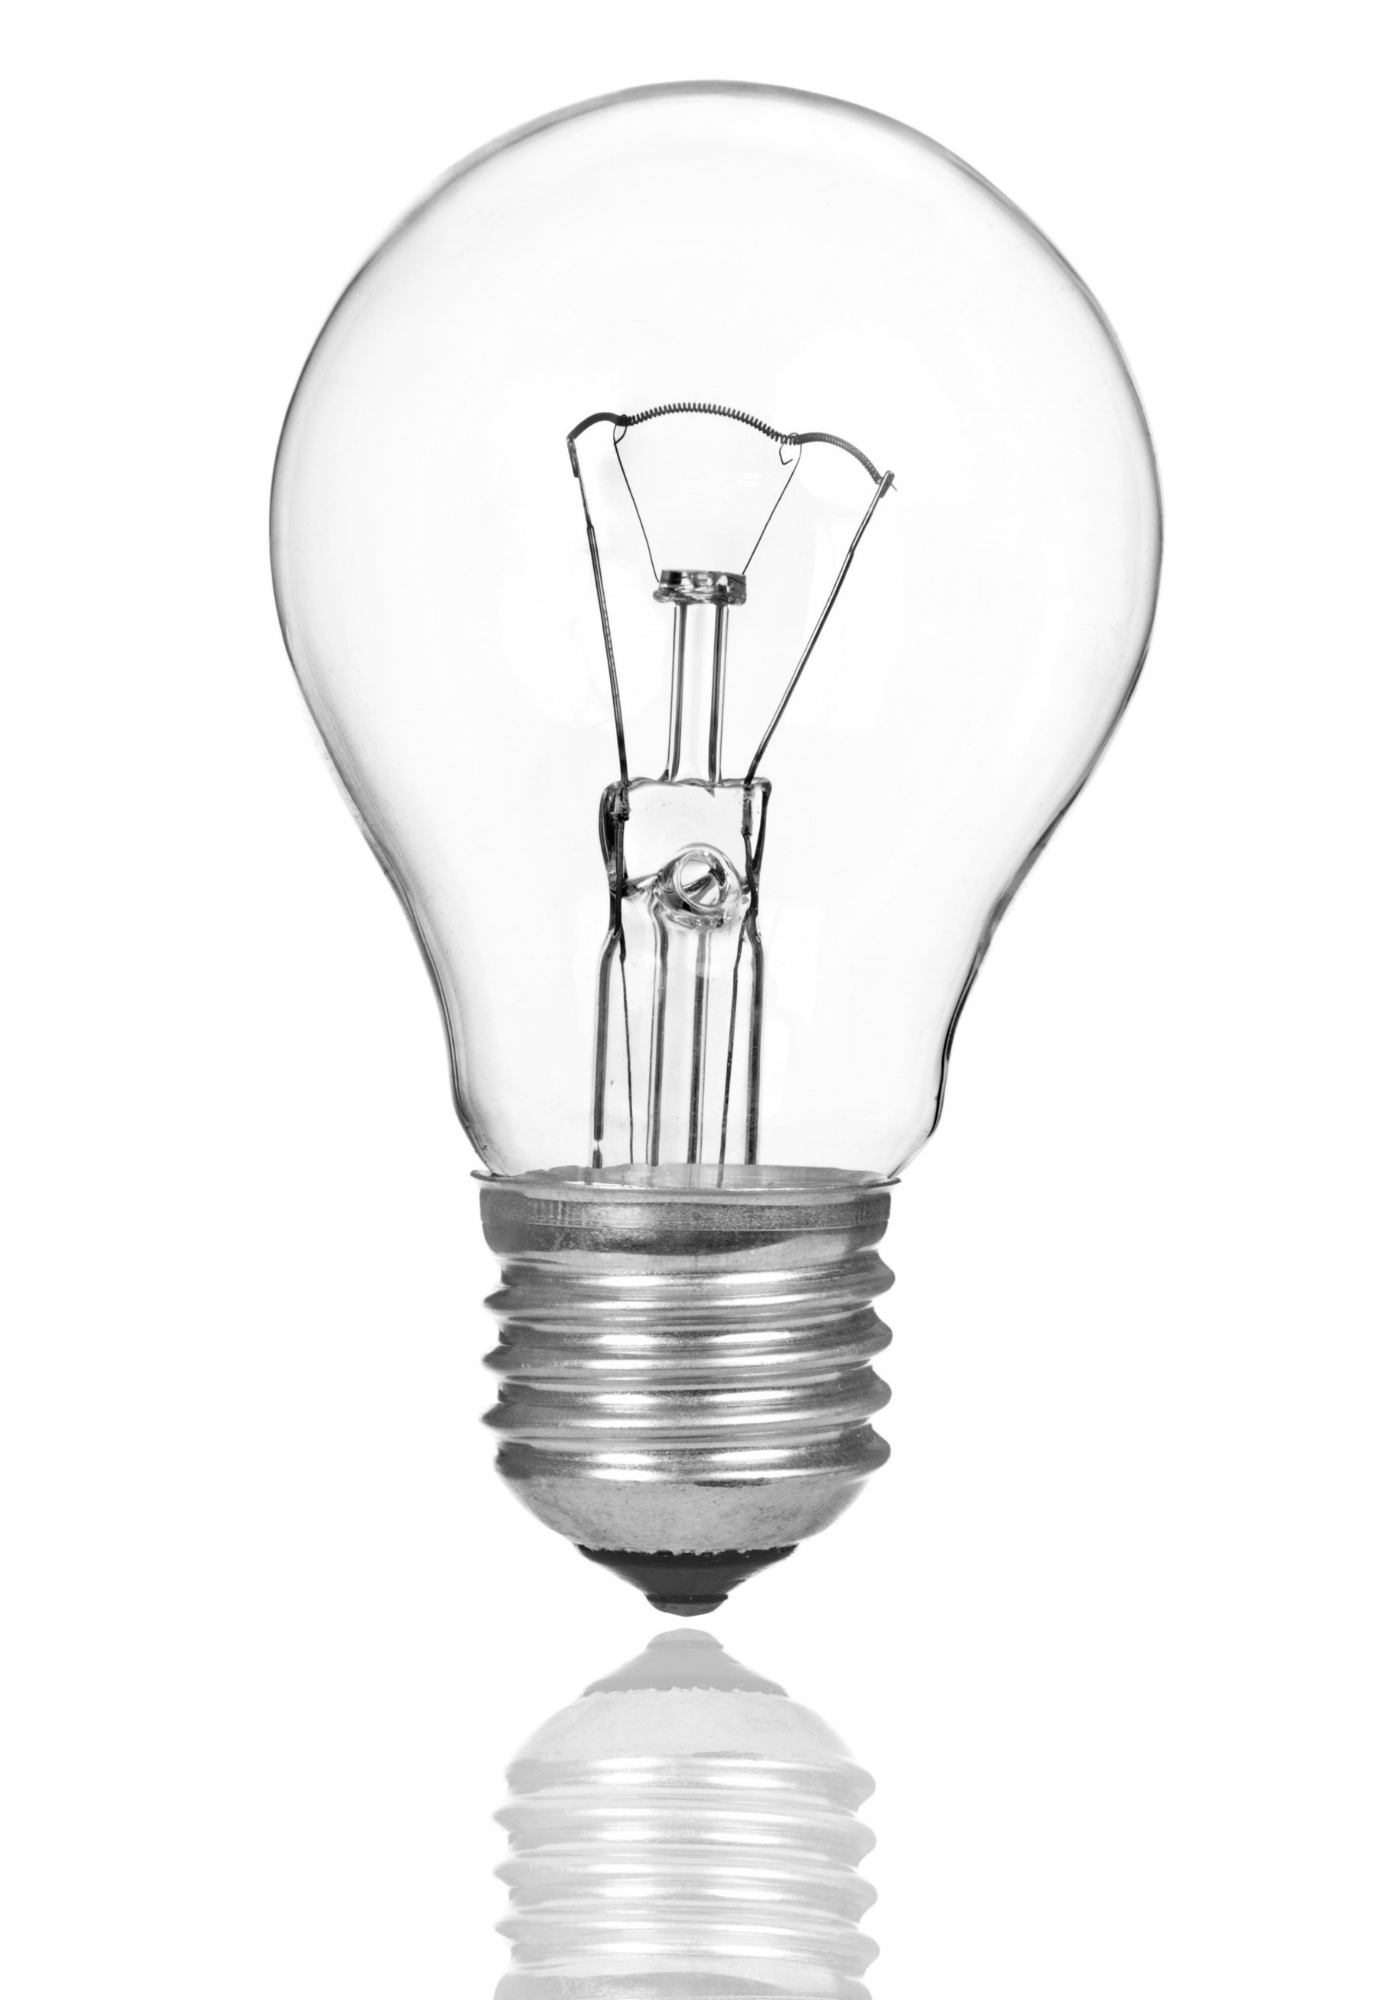 shutterstock_117858688_light bulb_bw.jpg